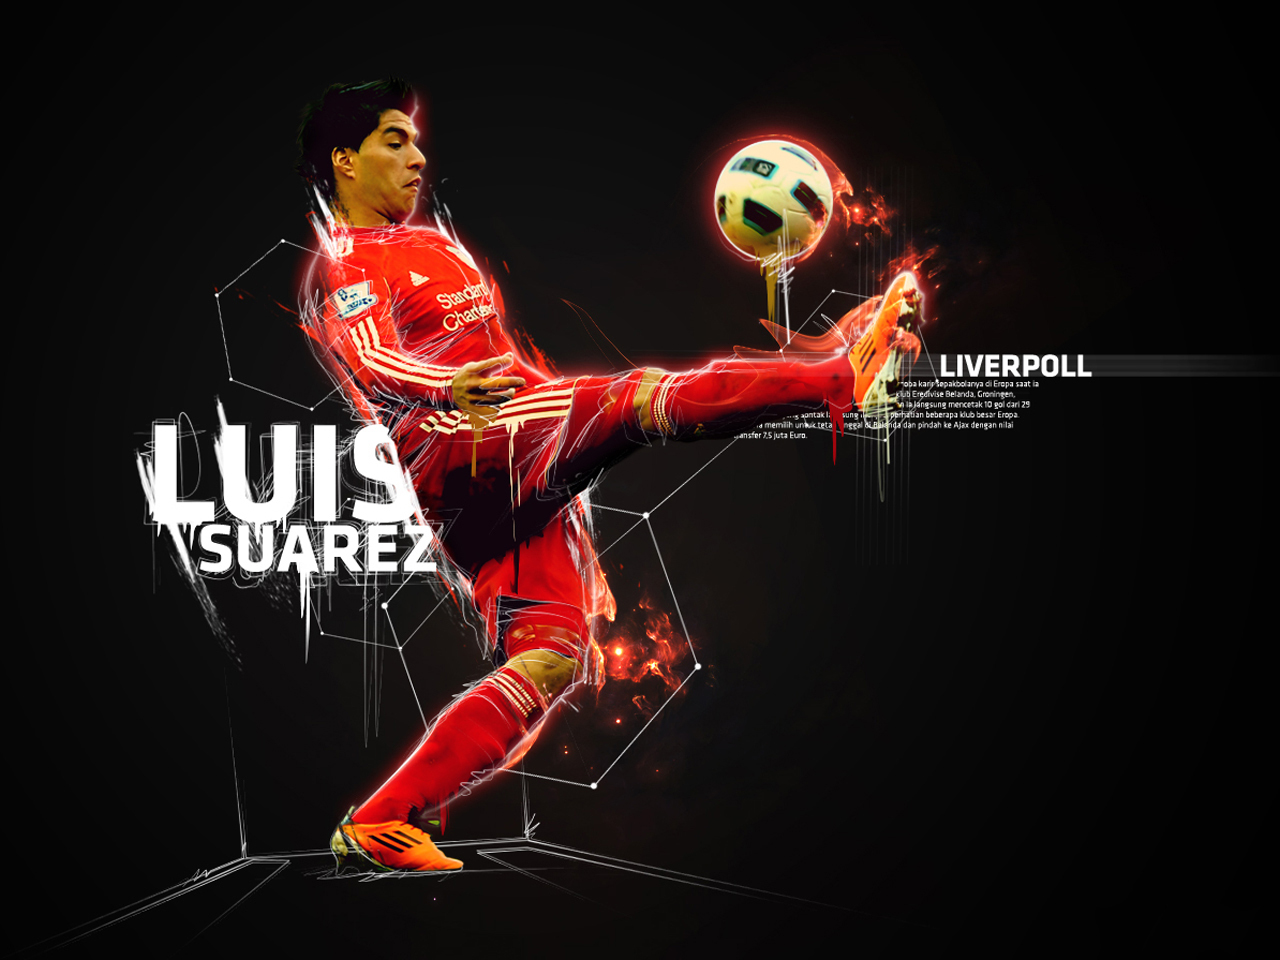 Luis suarez liverpool fc wallpaper suarez wallpaper all about liverpool fc video - Suarez liverpool wallpaper ...